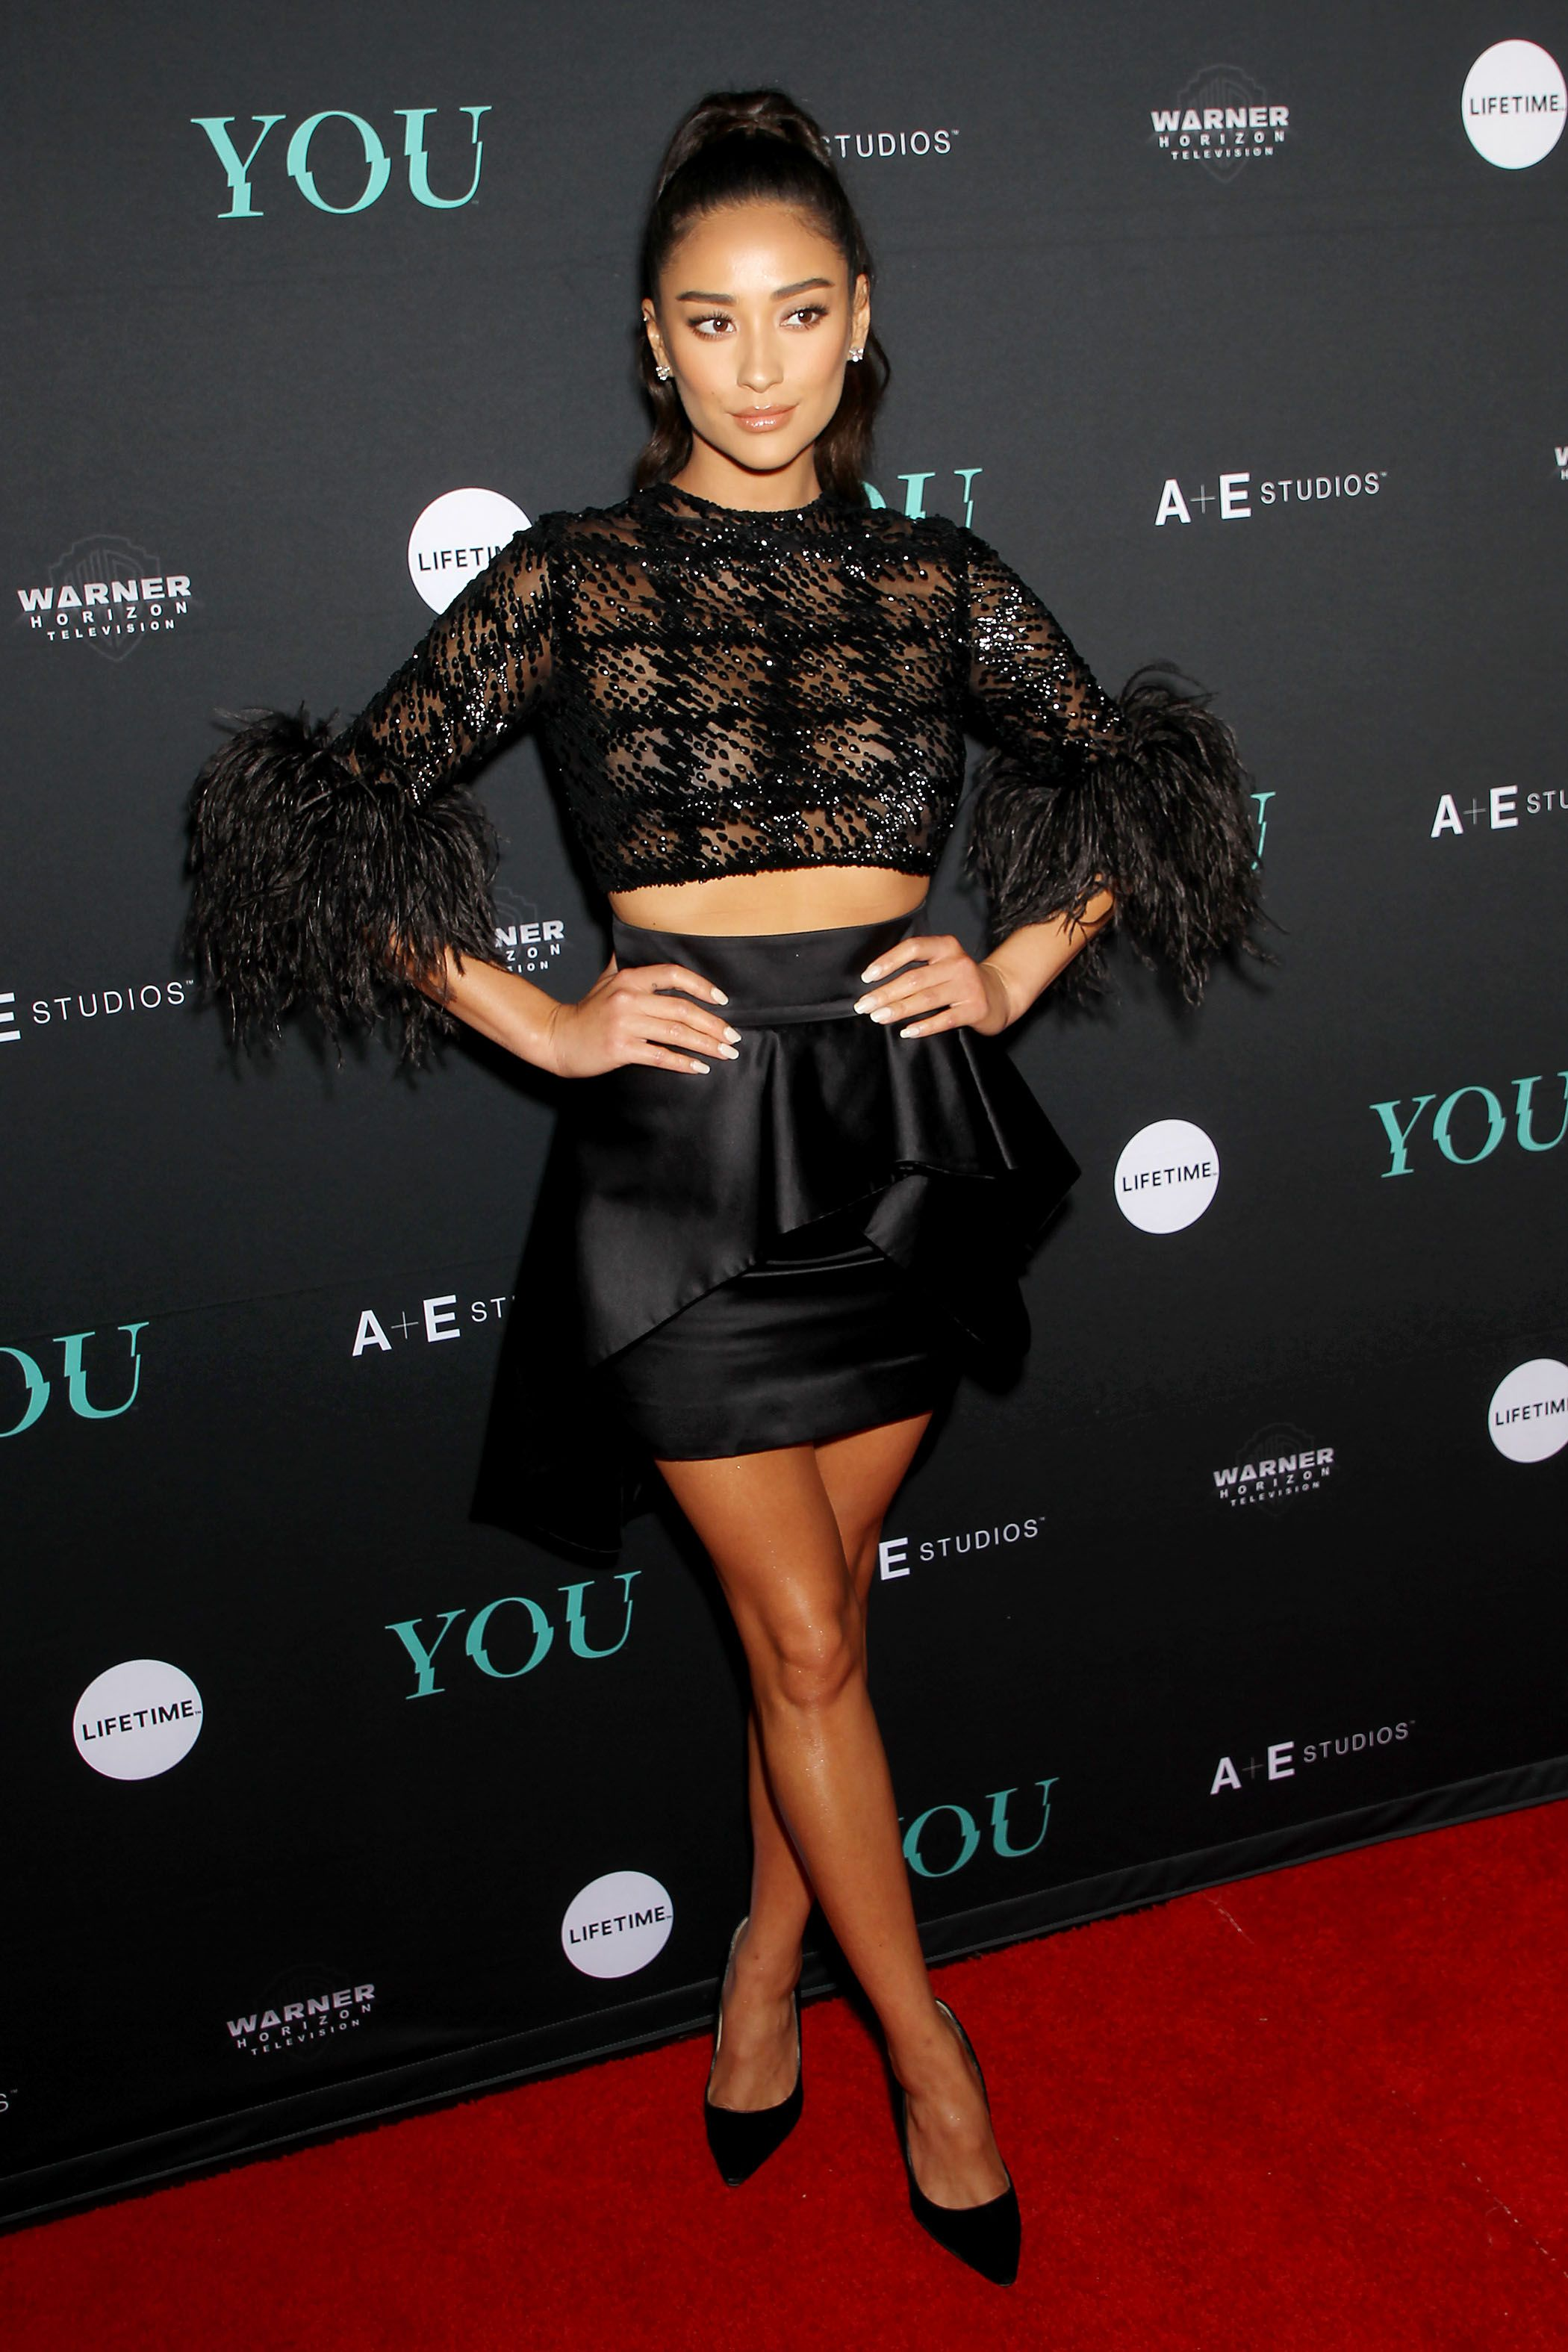 340f1a7c13 Shay Mitchell -  You  TV sereies premiere in New York